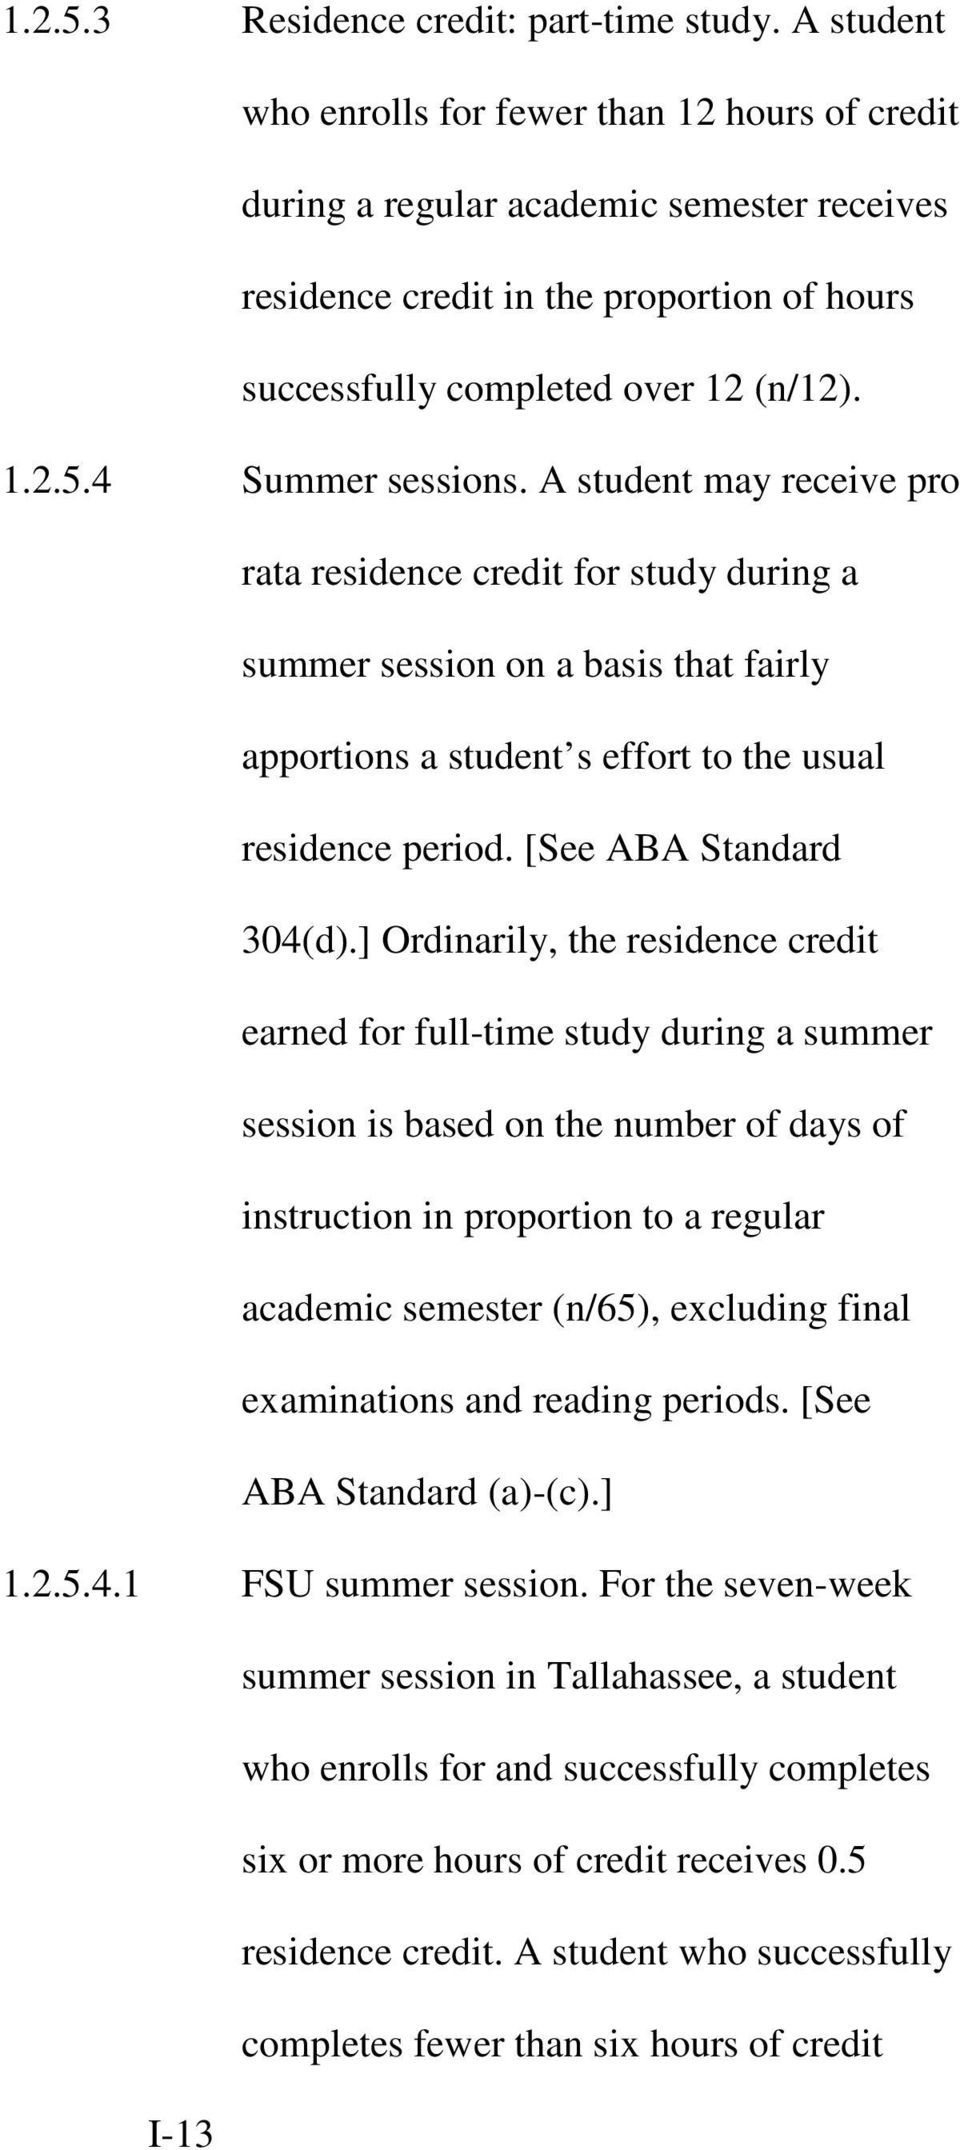 4 Summer sessions. A student may receive pro rata residence credit for study during a summer session on a basis that fairly apportions a student s effort to the usual residence period.